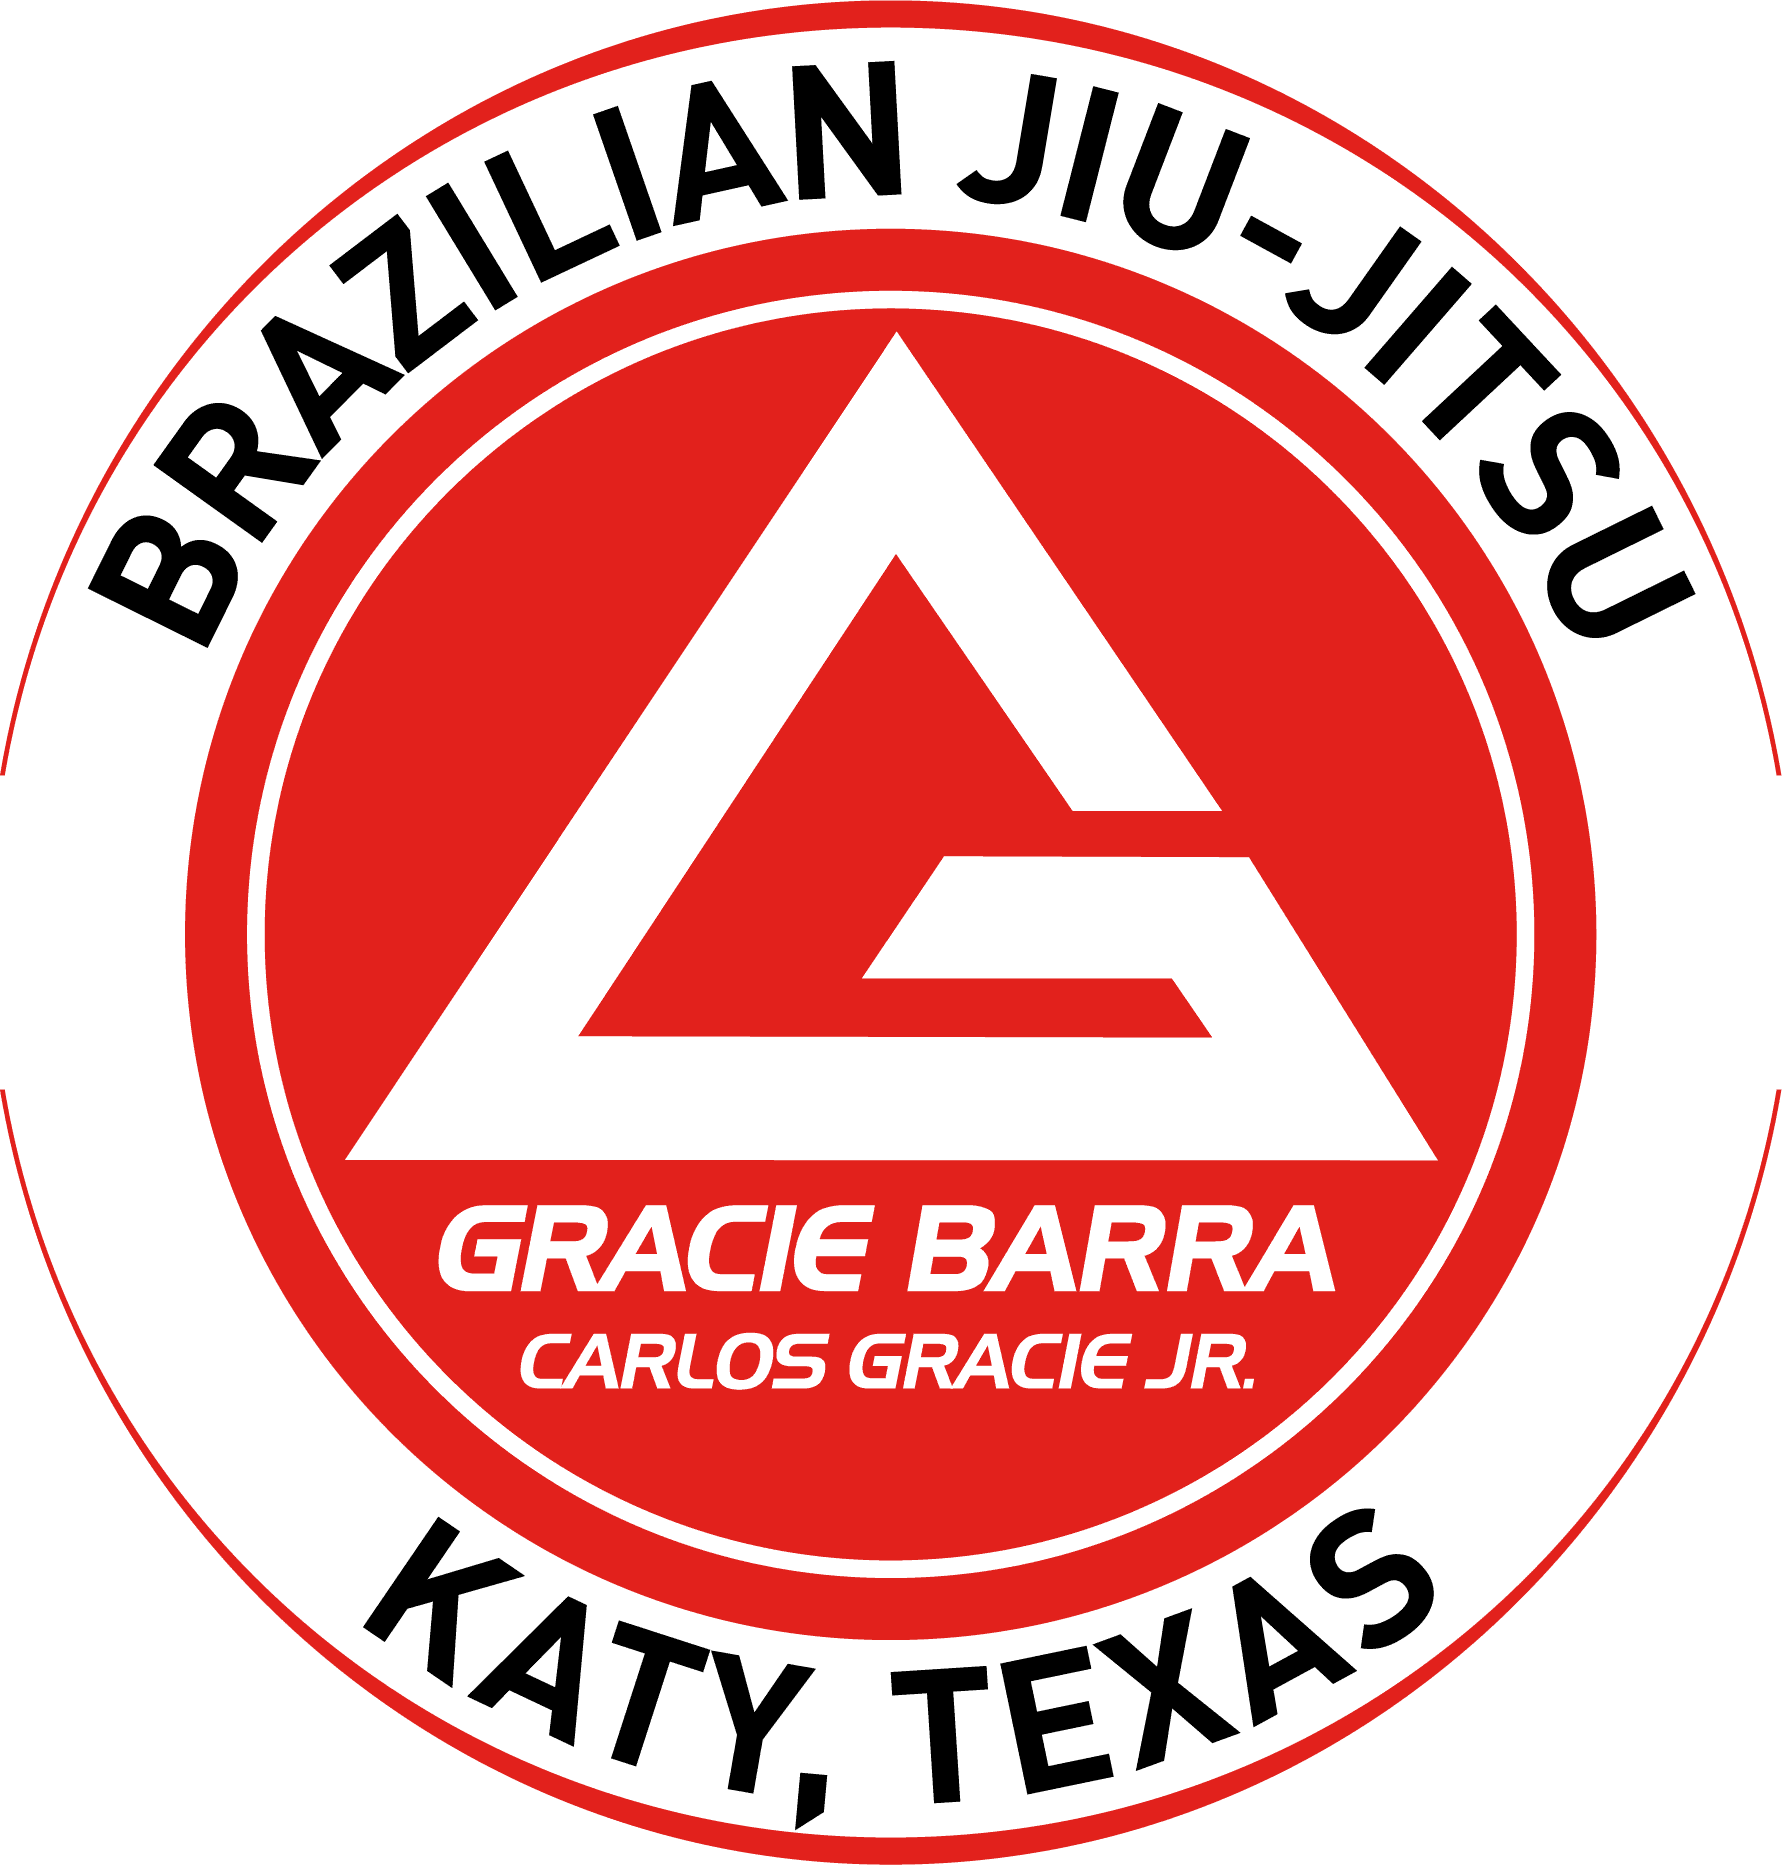 Gracie Barra Katy